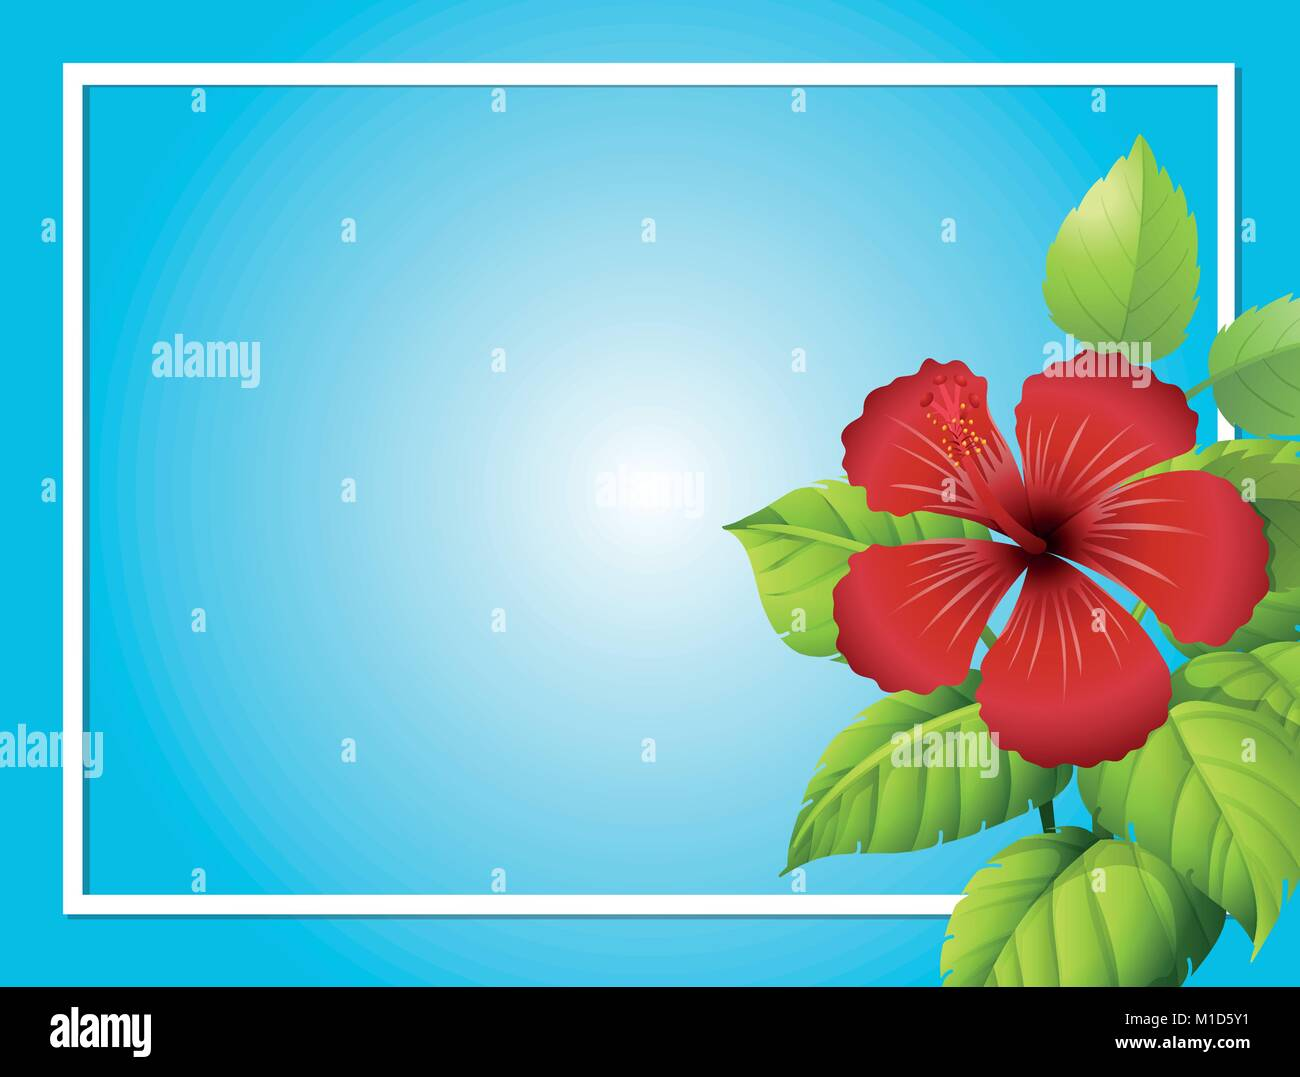 Blue background template with hibiscus flower illustration stock blue background template with hibiscus flower illustration izmirmasajfo